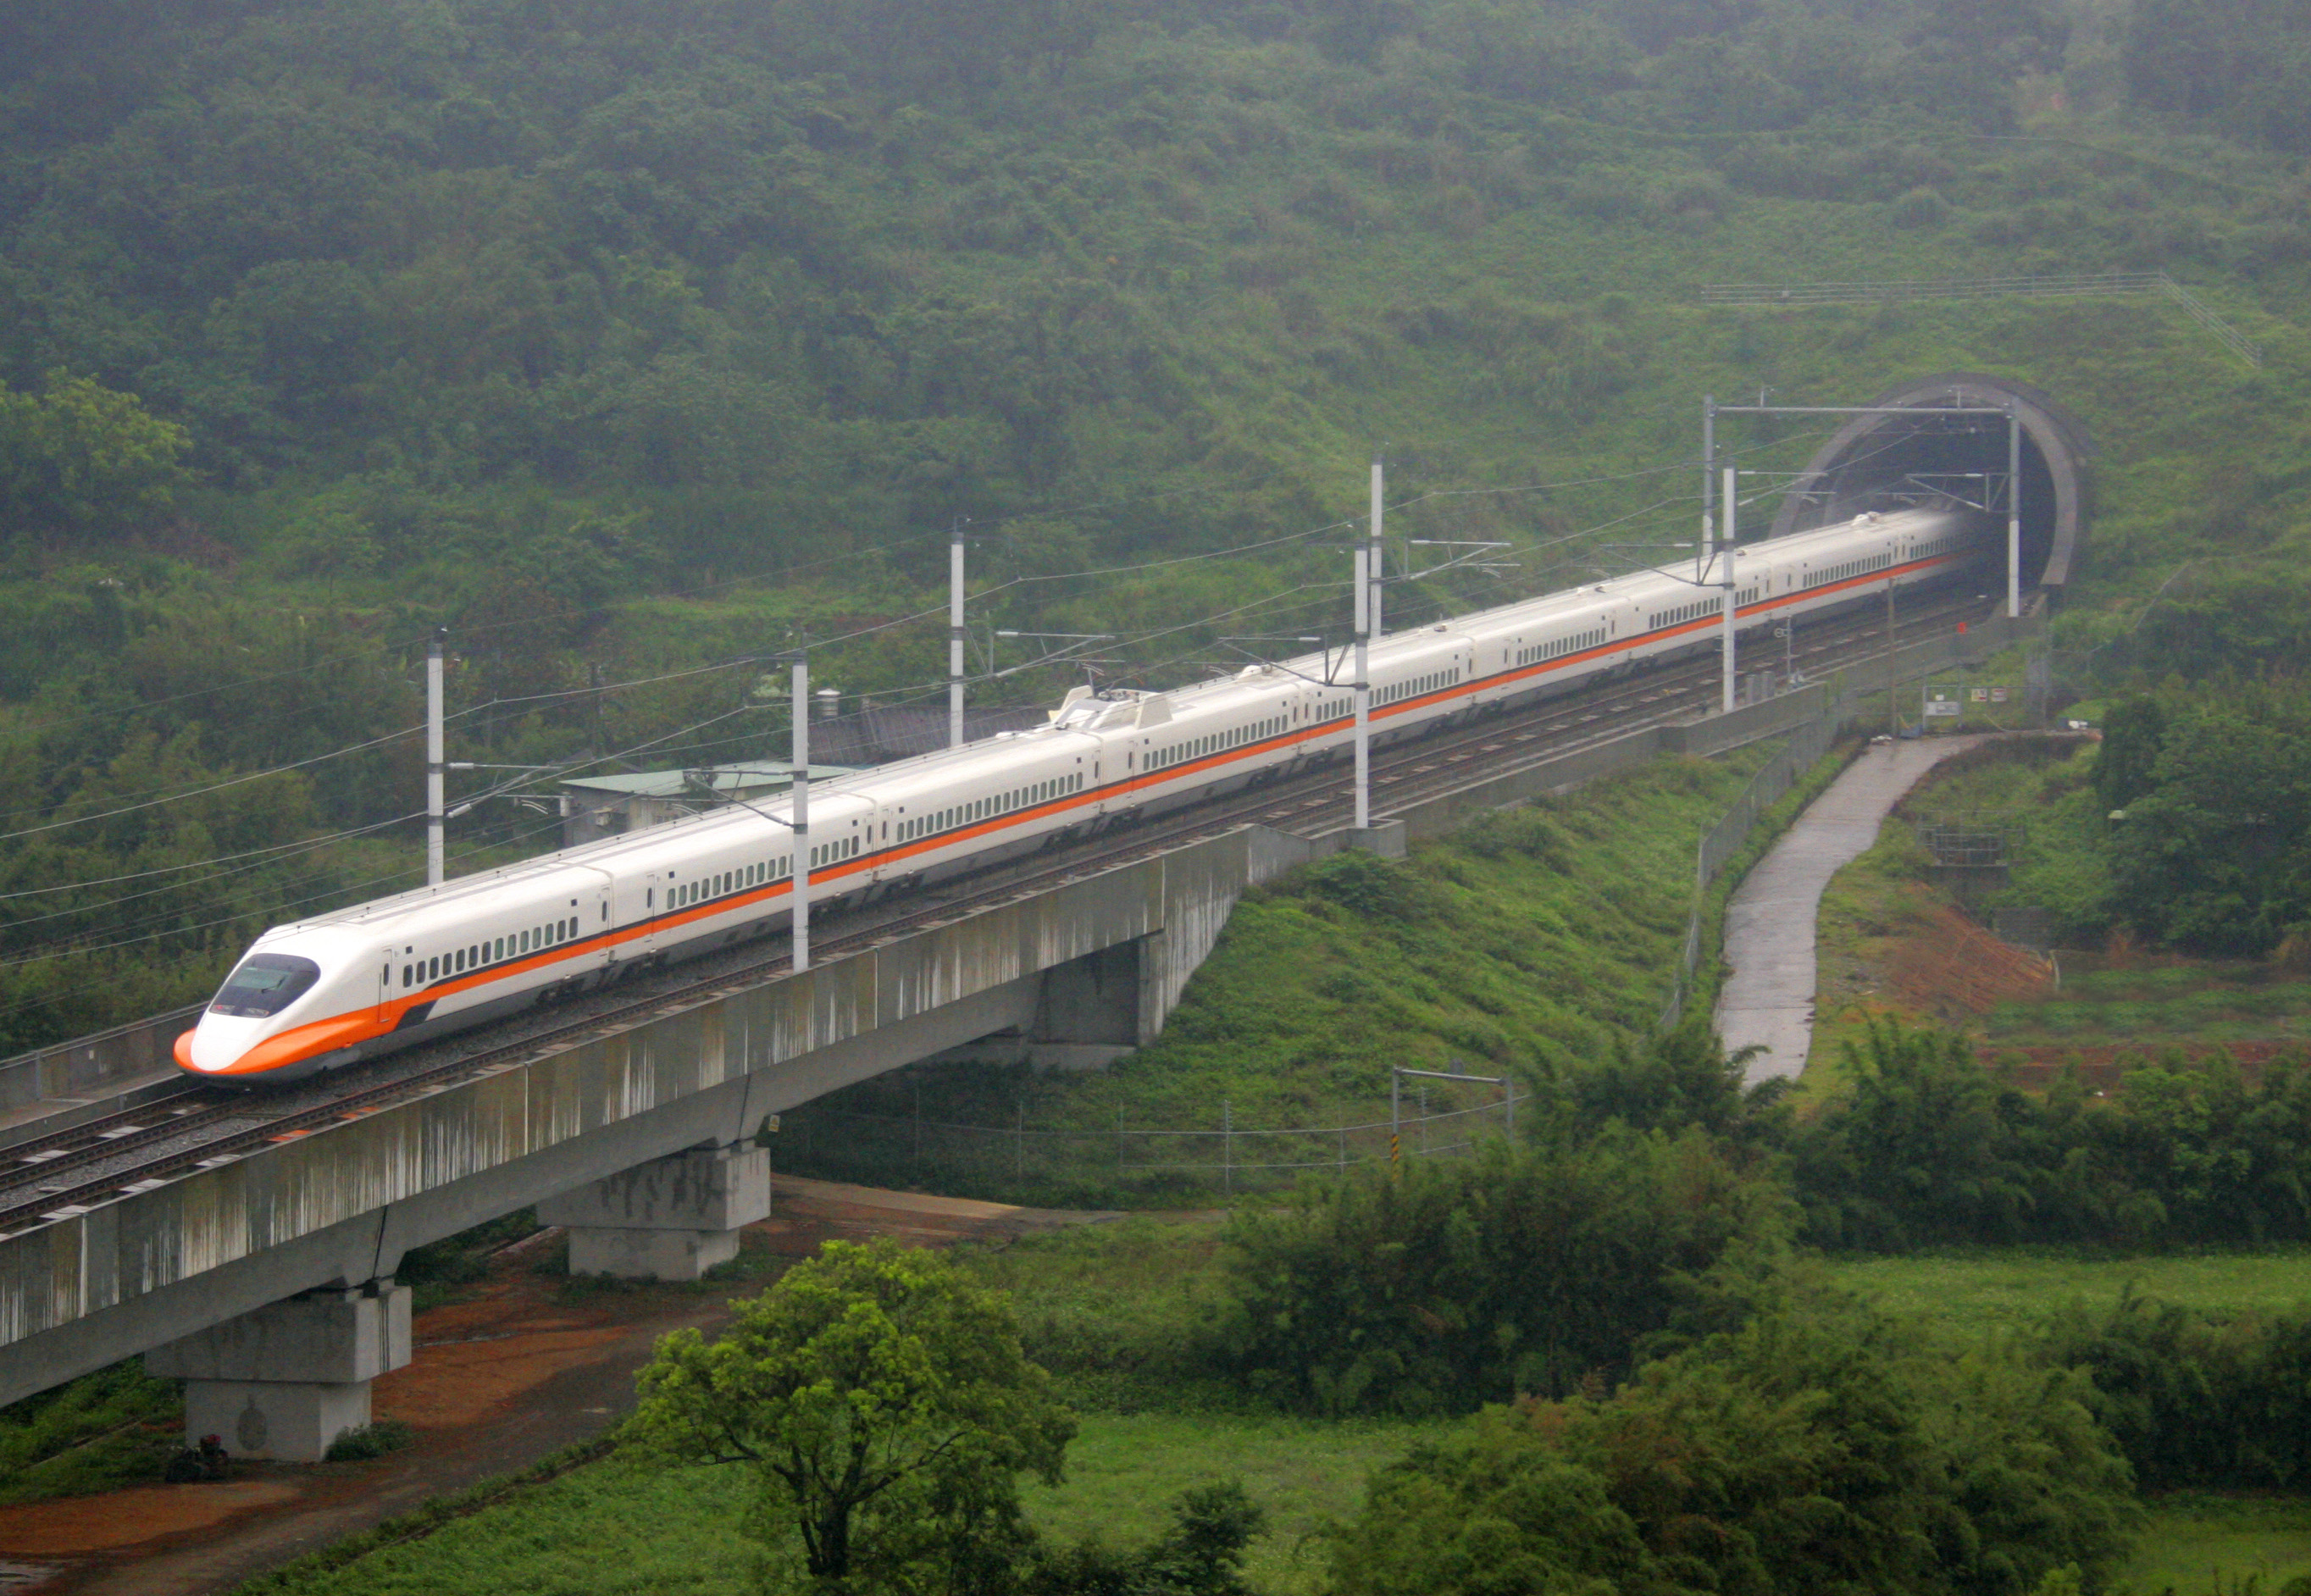 High speed train exiting tunnel approaching viaduct